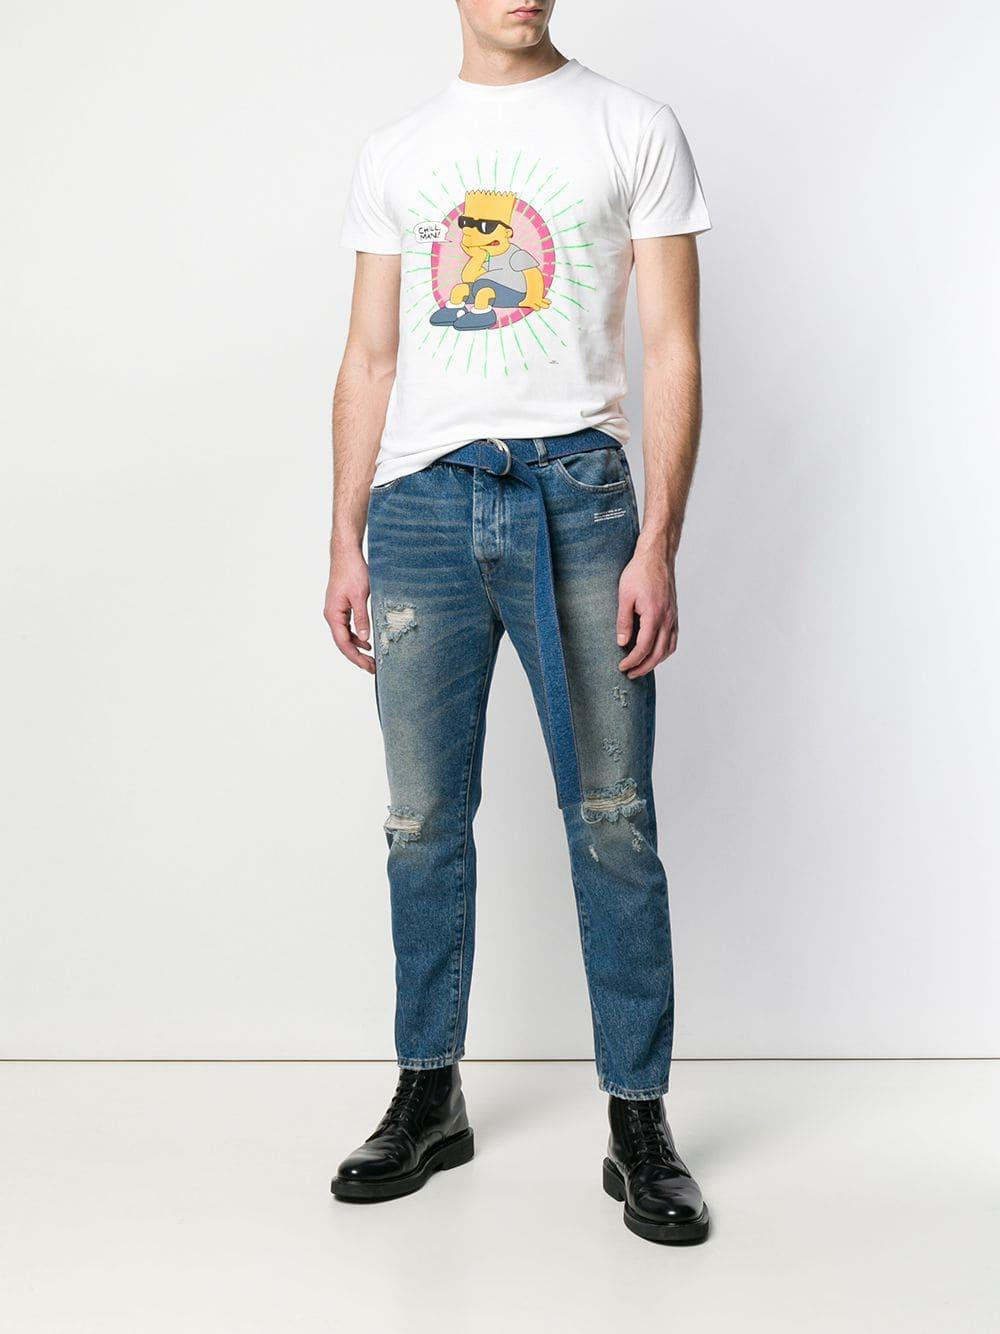 65a96135 Off-White c/o Virgil Abloh Slim Low Crotch Jeans in Blue for Men - Lyst